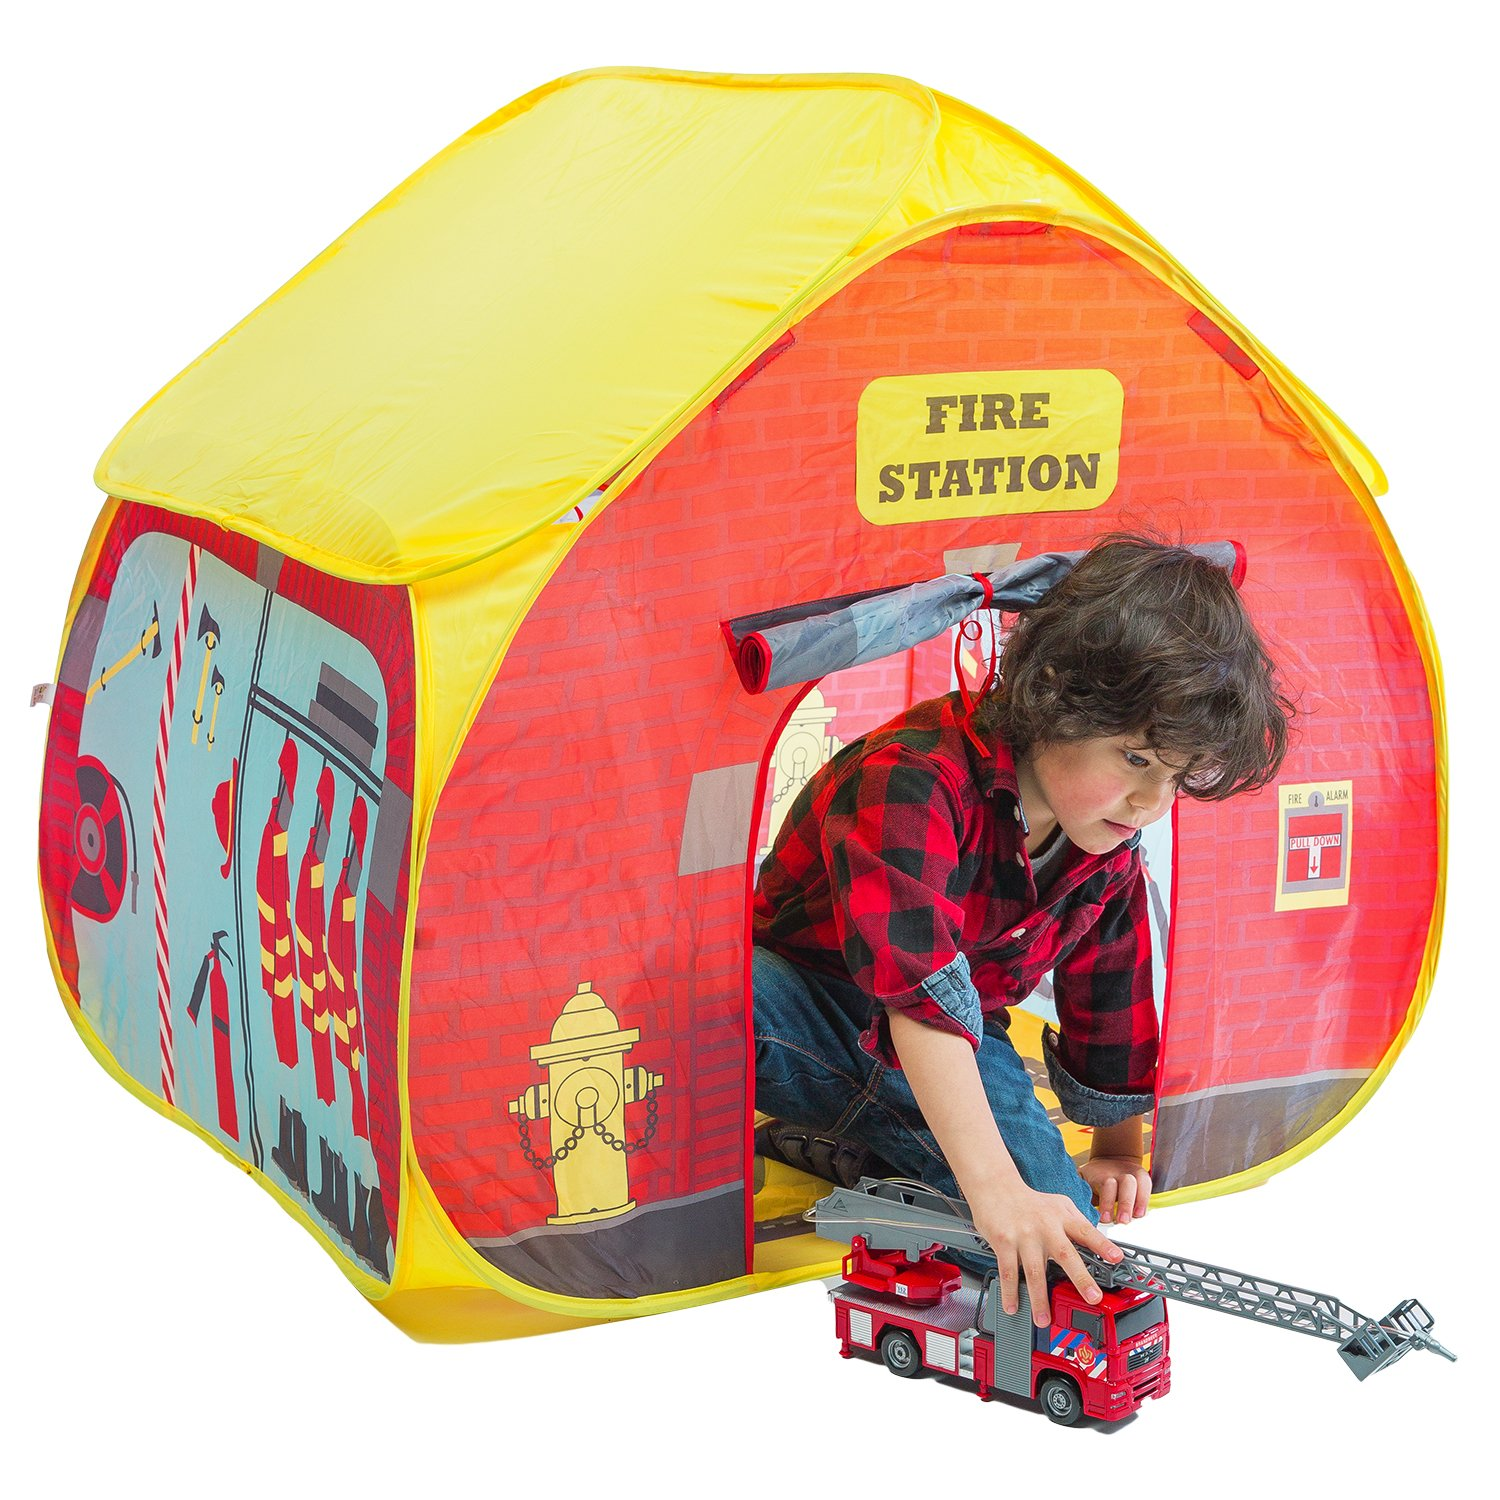 Amazon.com Fun2Give Pop-It-Up Firestation Tent with Streetmap Playmat Playhouse Toys u0026 Games  sc 1 st  Amazon.com & Amazon.com: Fun2Give Pop-It-Up Firestation Tent with Streetmap ...